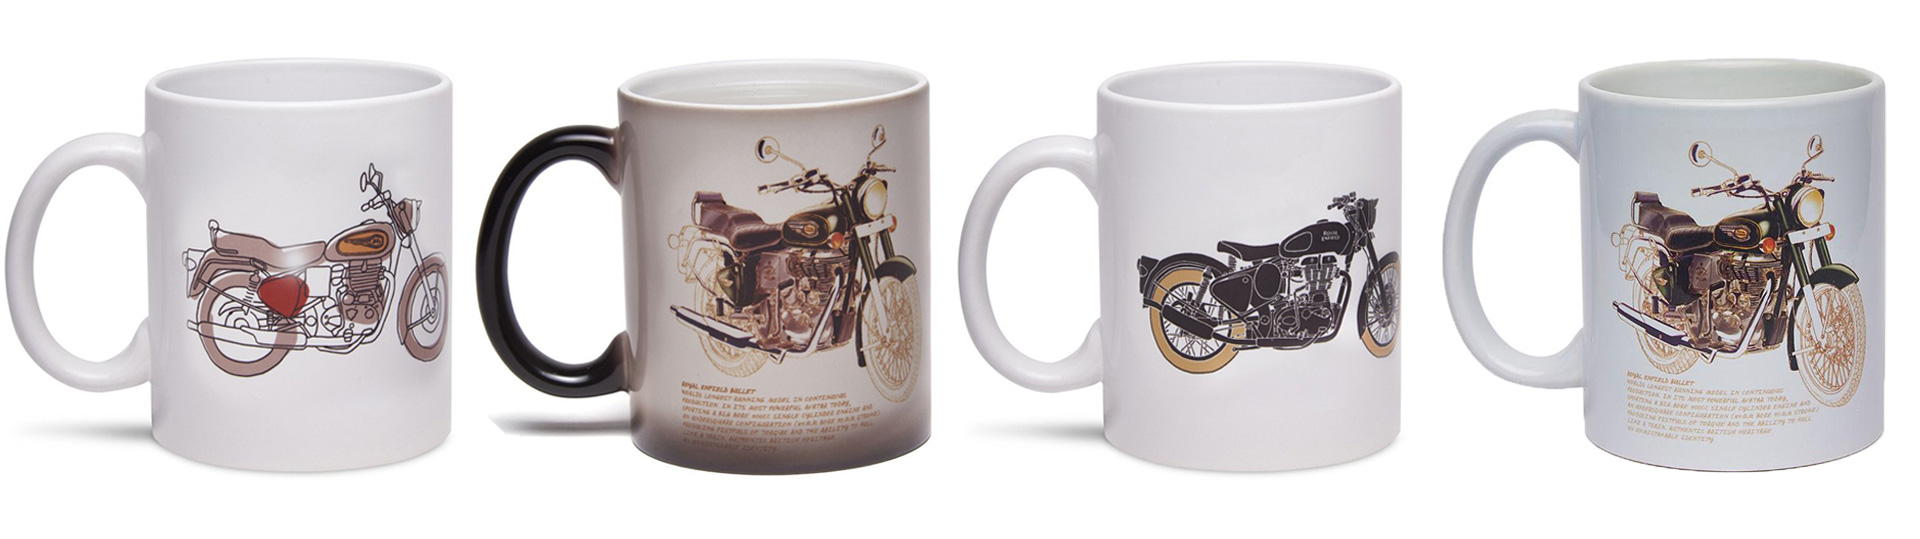 Royal Enfield have a great range of mugs and other apparel available.